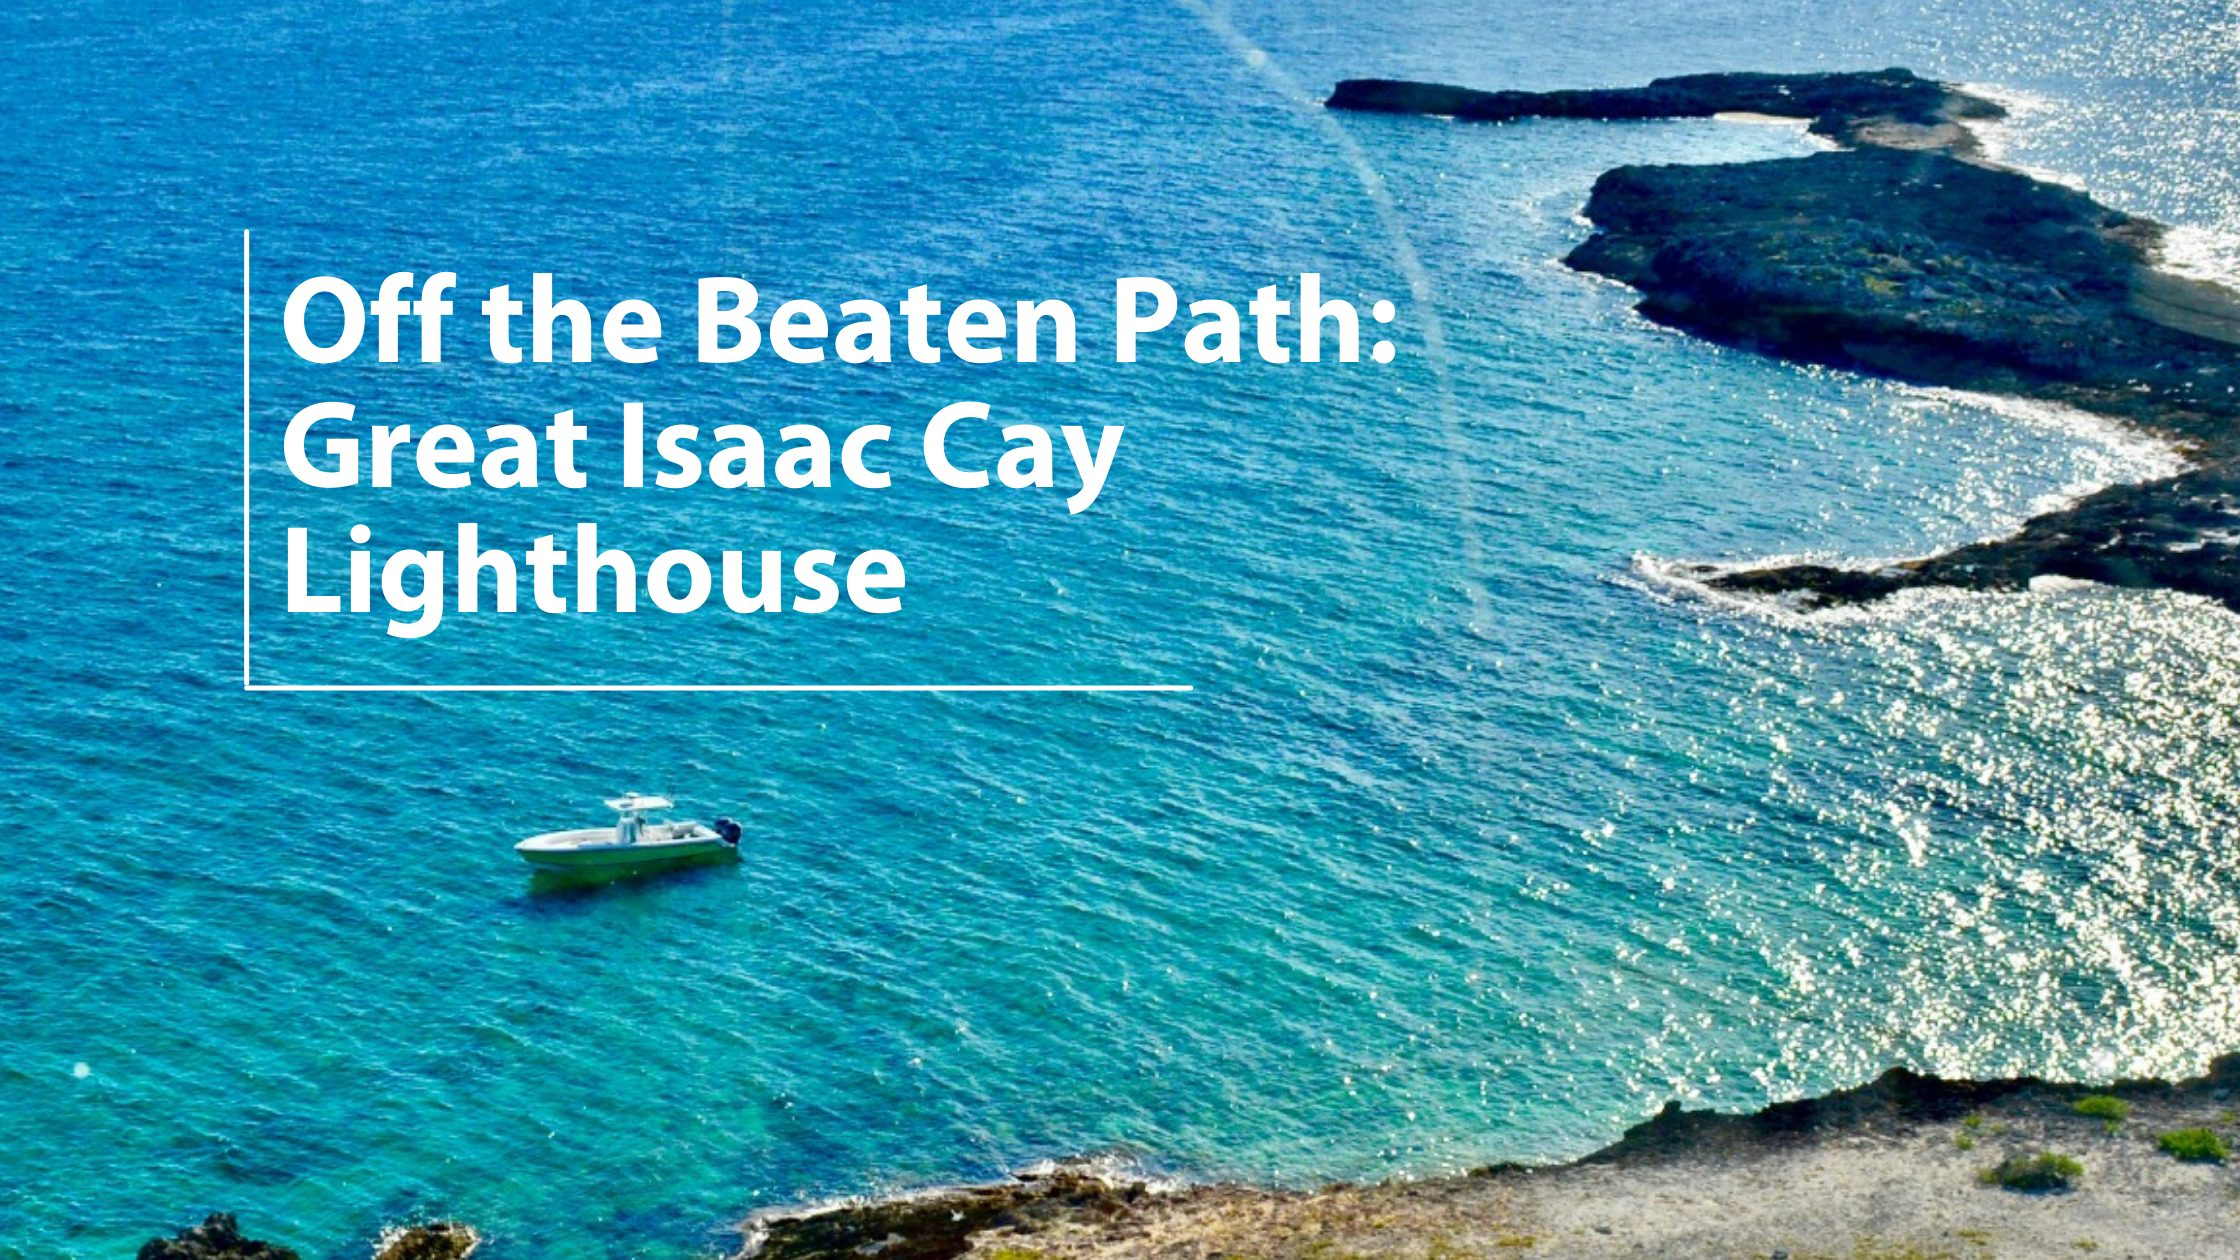 Off the Beaten Path: Great Isaac Cay Lighthouse